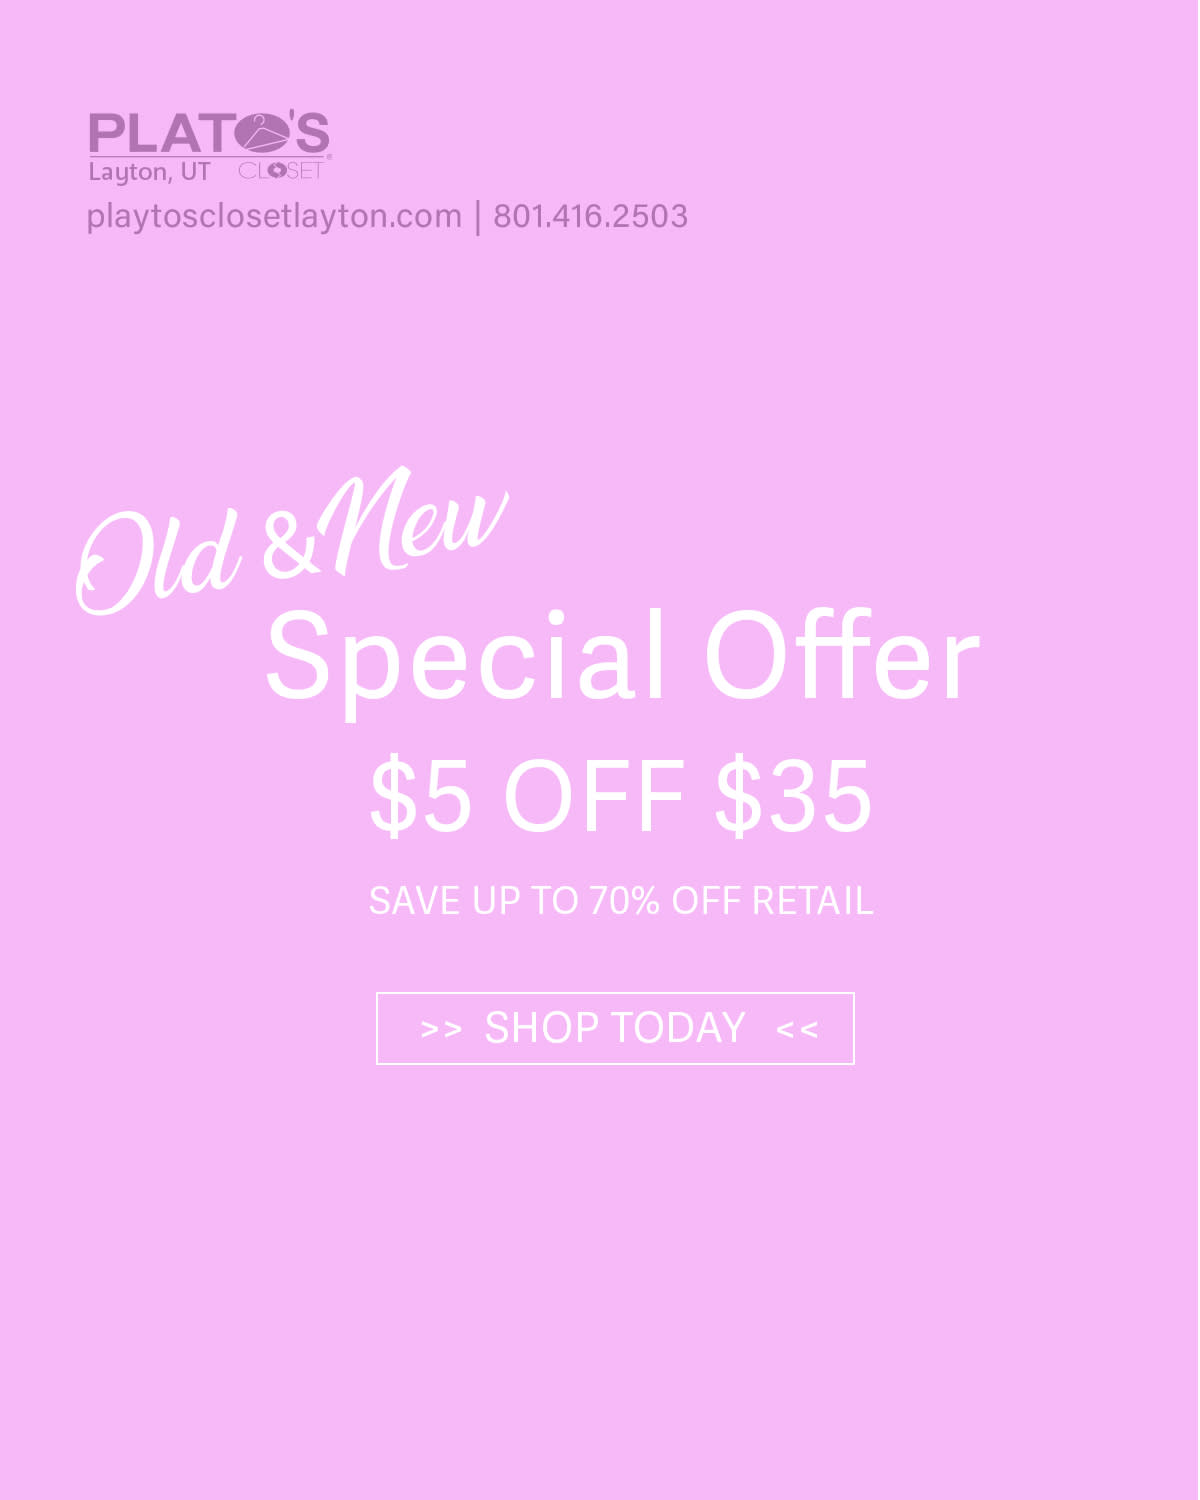 Coupon for $5 off $35 at Plato's Closet